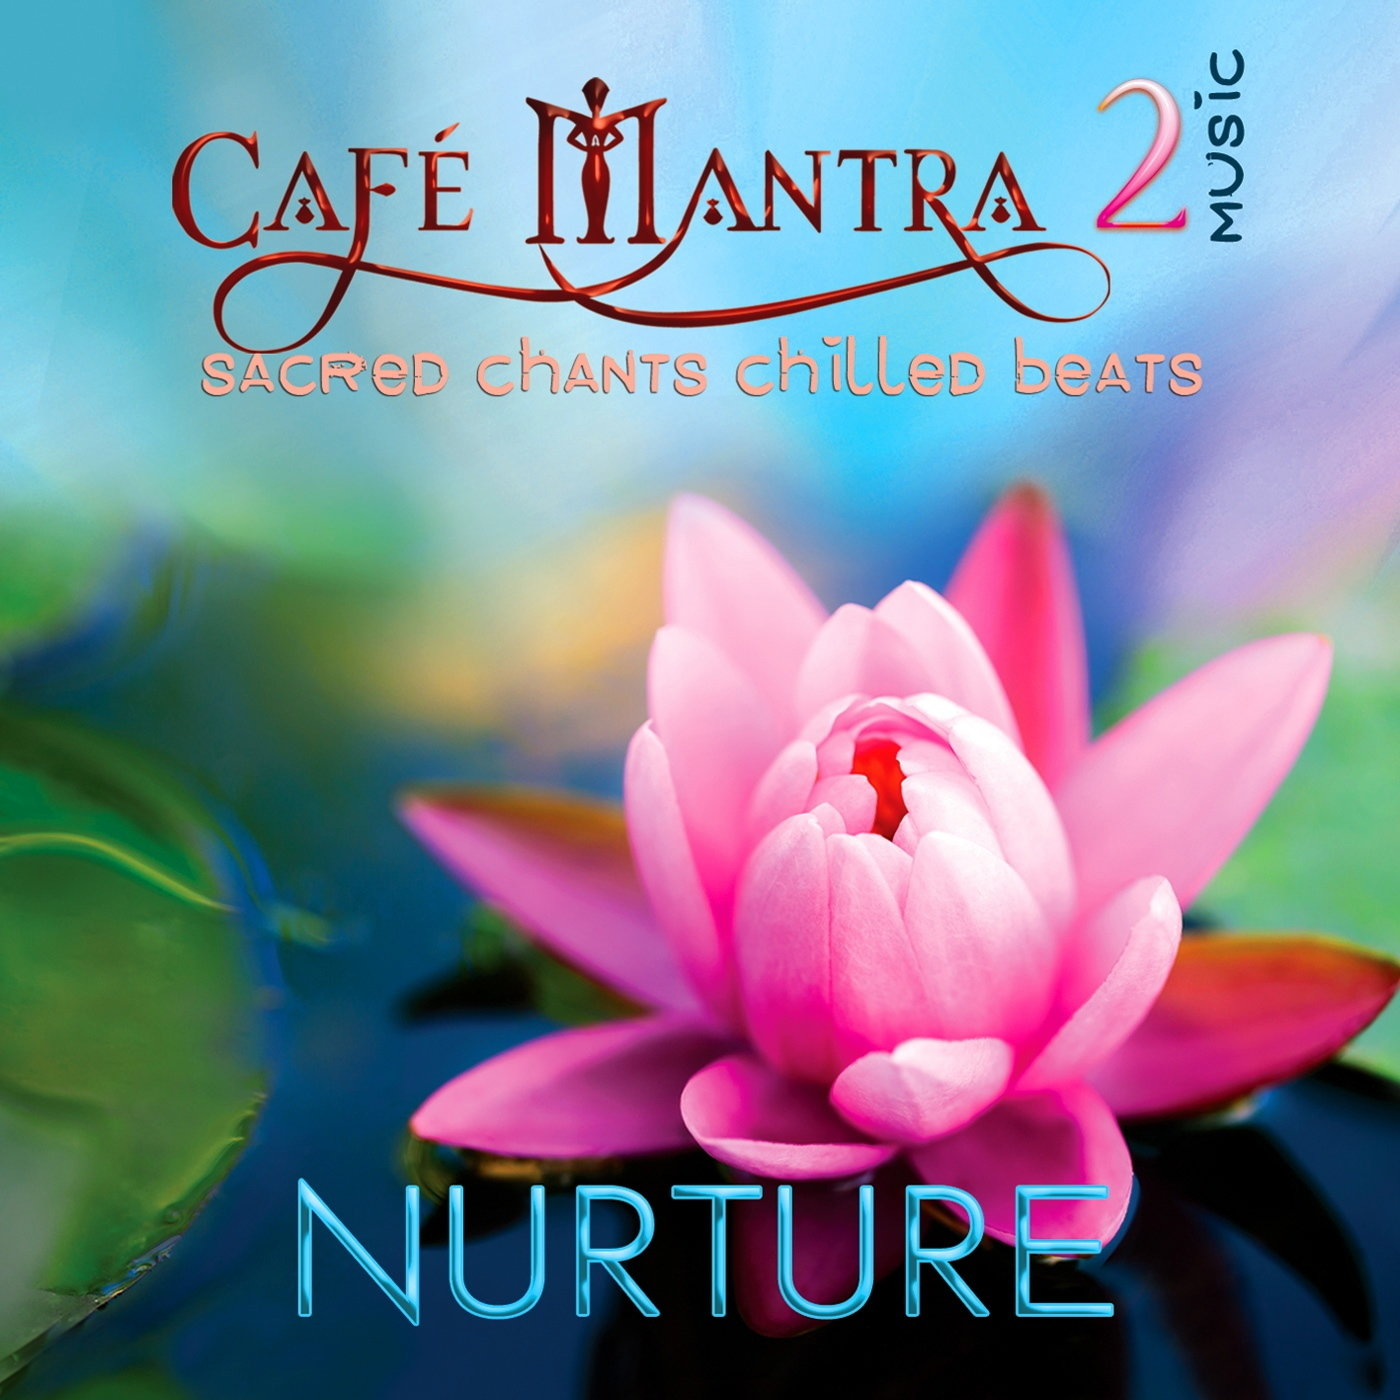 CD Cafe Mantra Music2 Nurture 00001